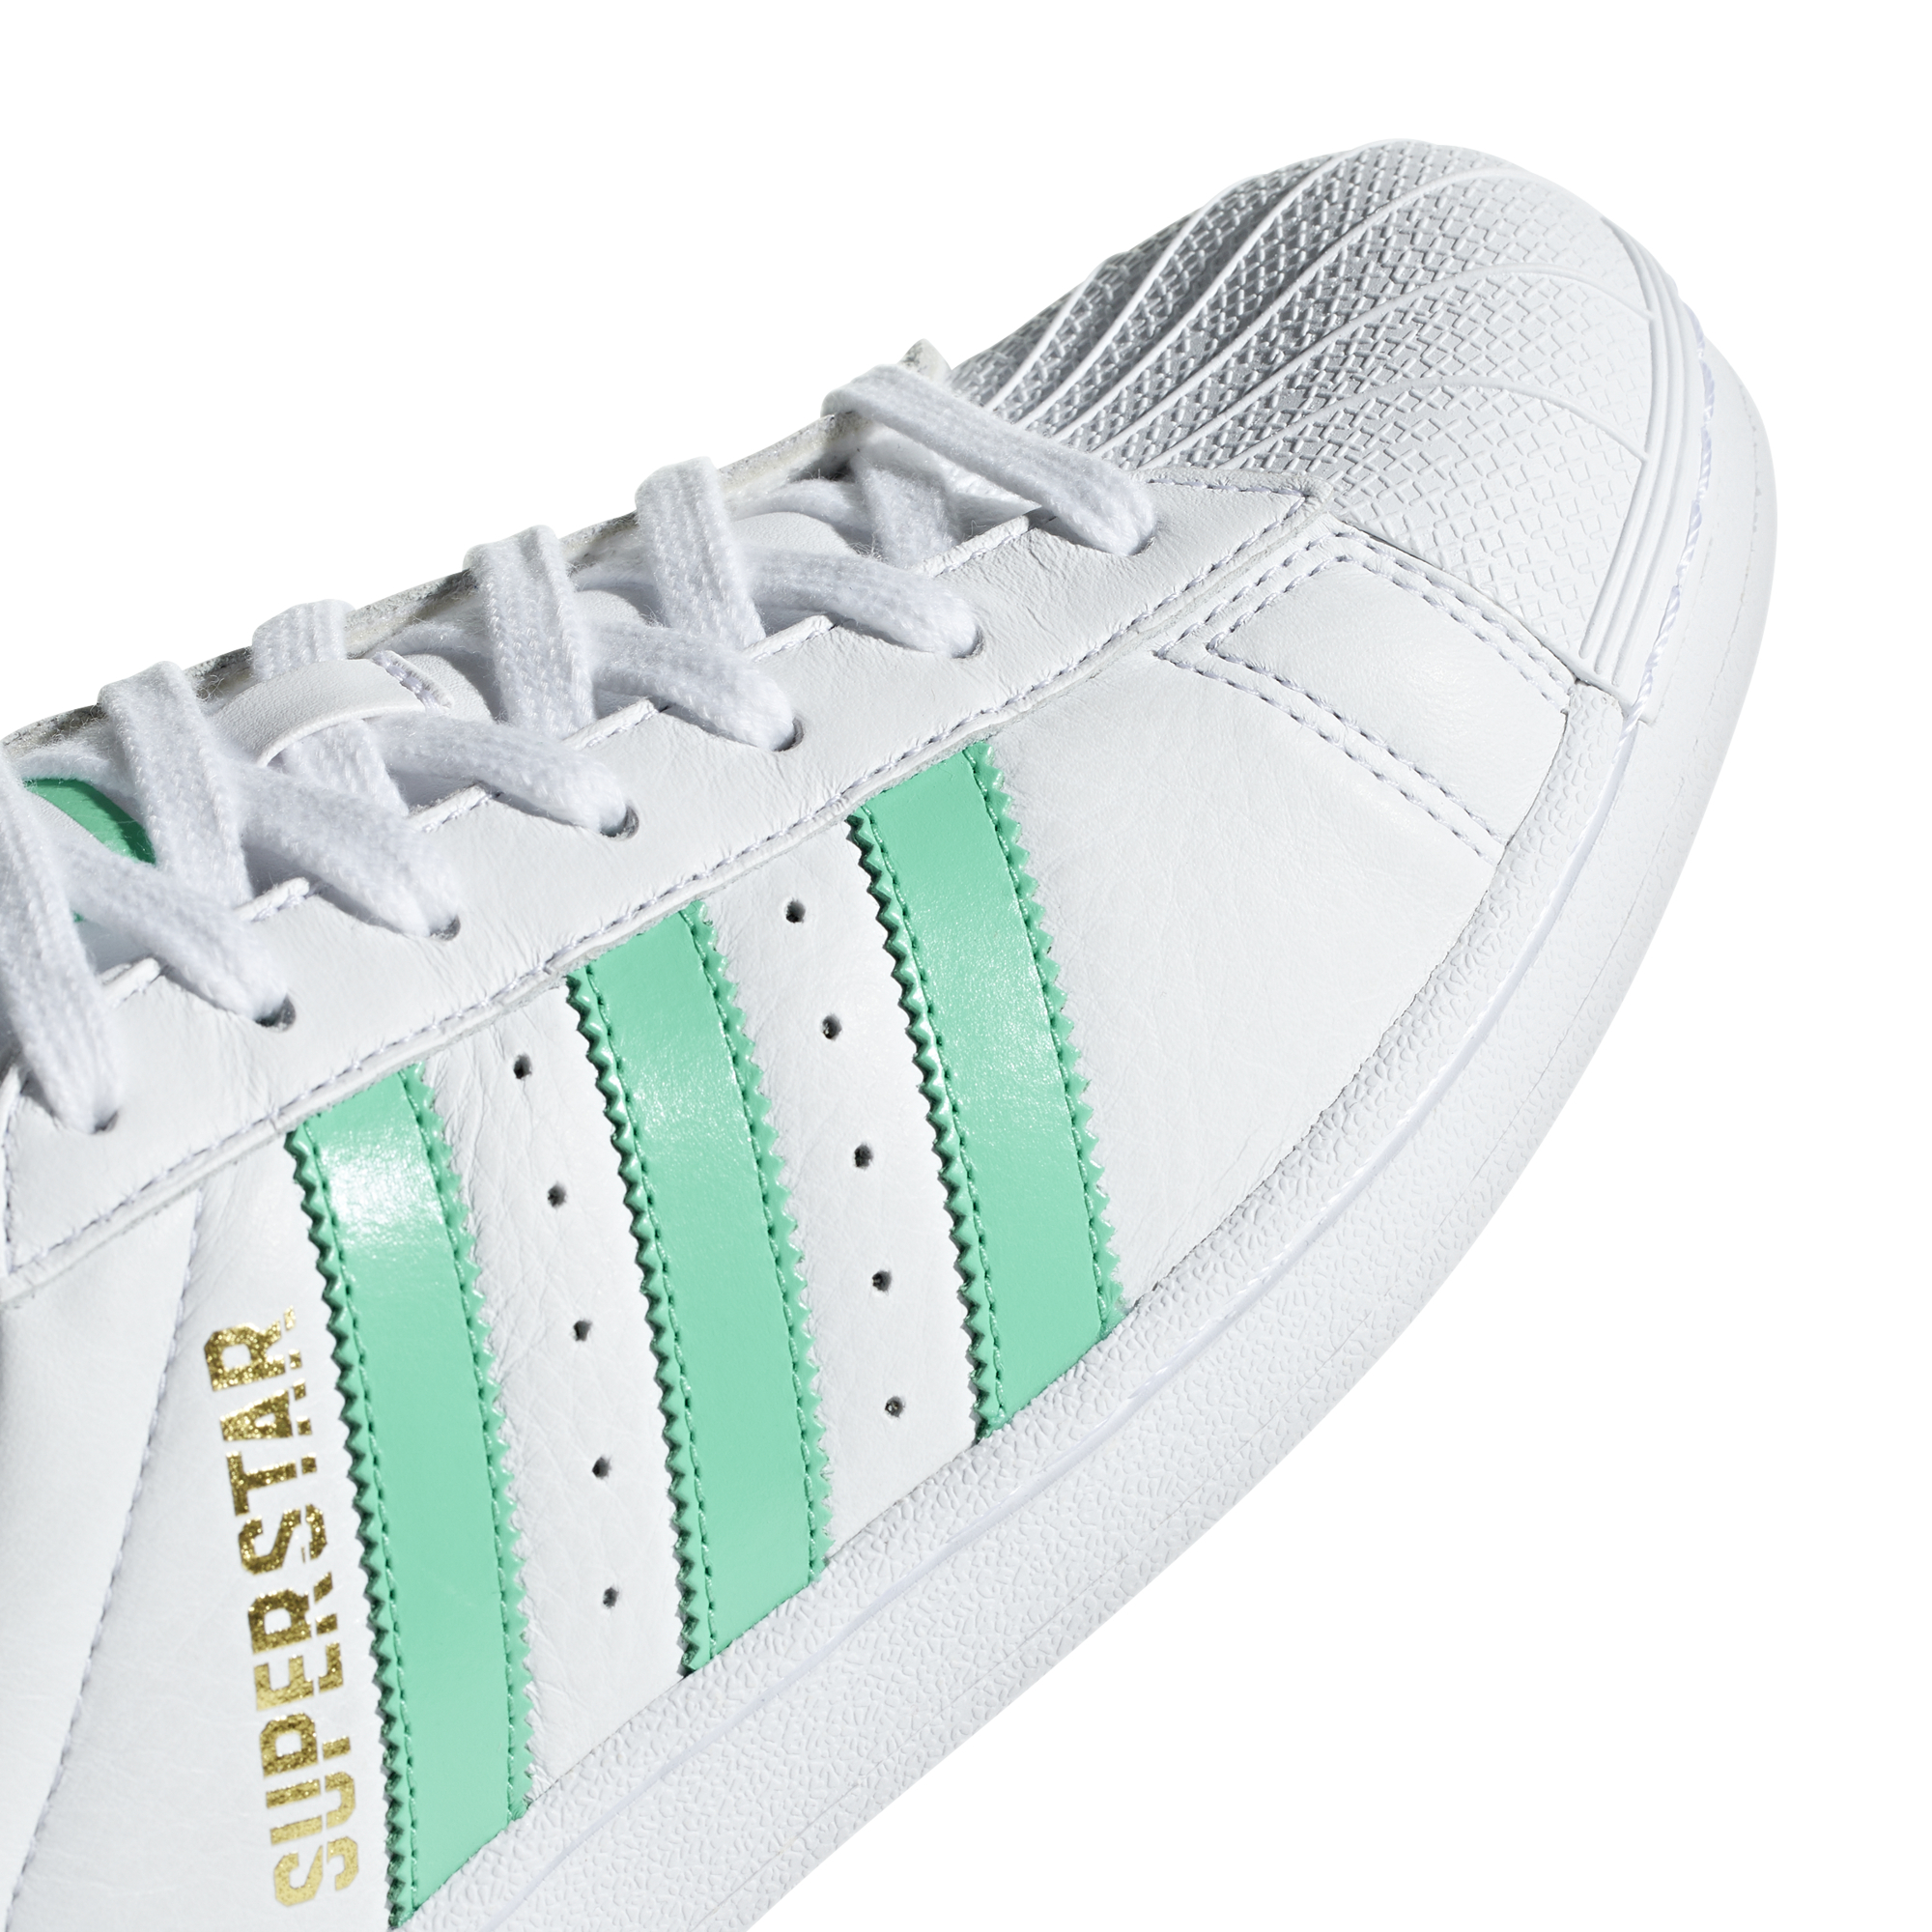 1c1221d3441b3 ADIDAS SUPERSTAR - gallery 0 ADIDAS SUPERSTAR - gallery 1 ...